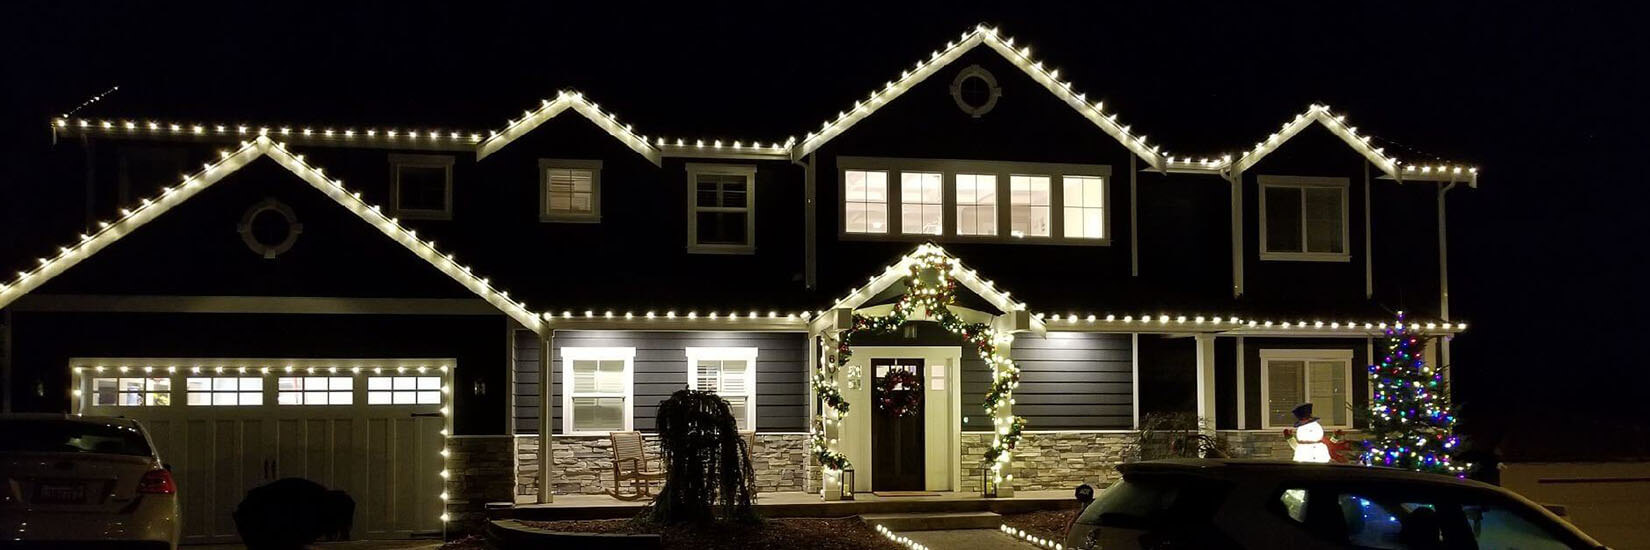 Bellevue Christmas Light Installation, Holiday Lighting Installation and Christmas Light Company